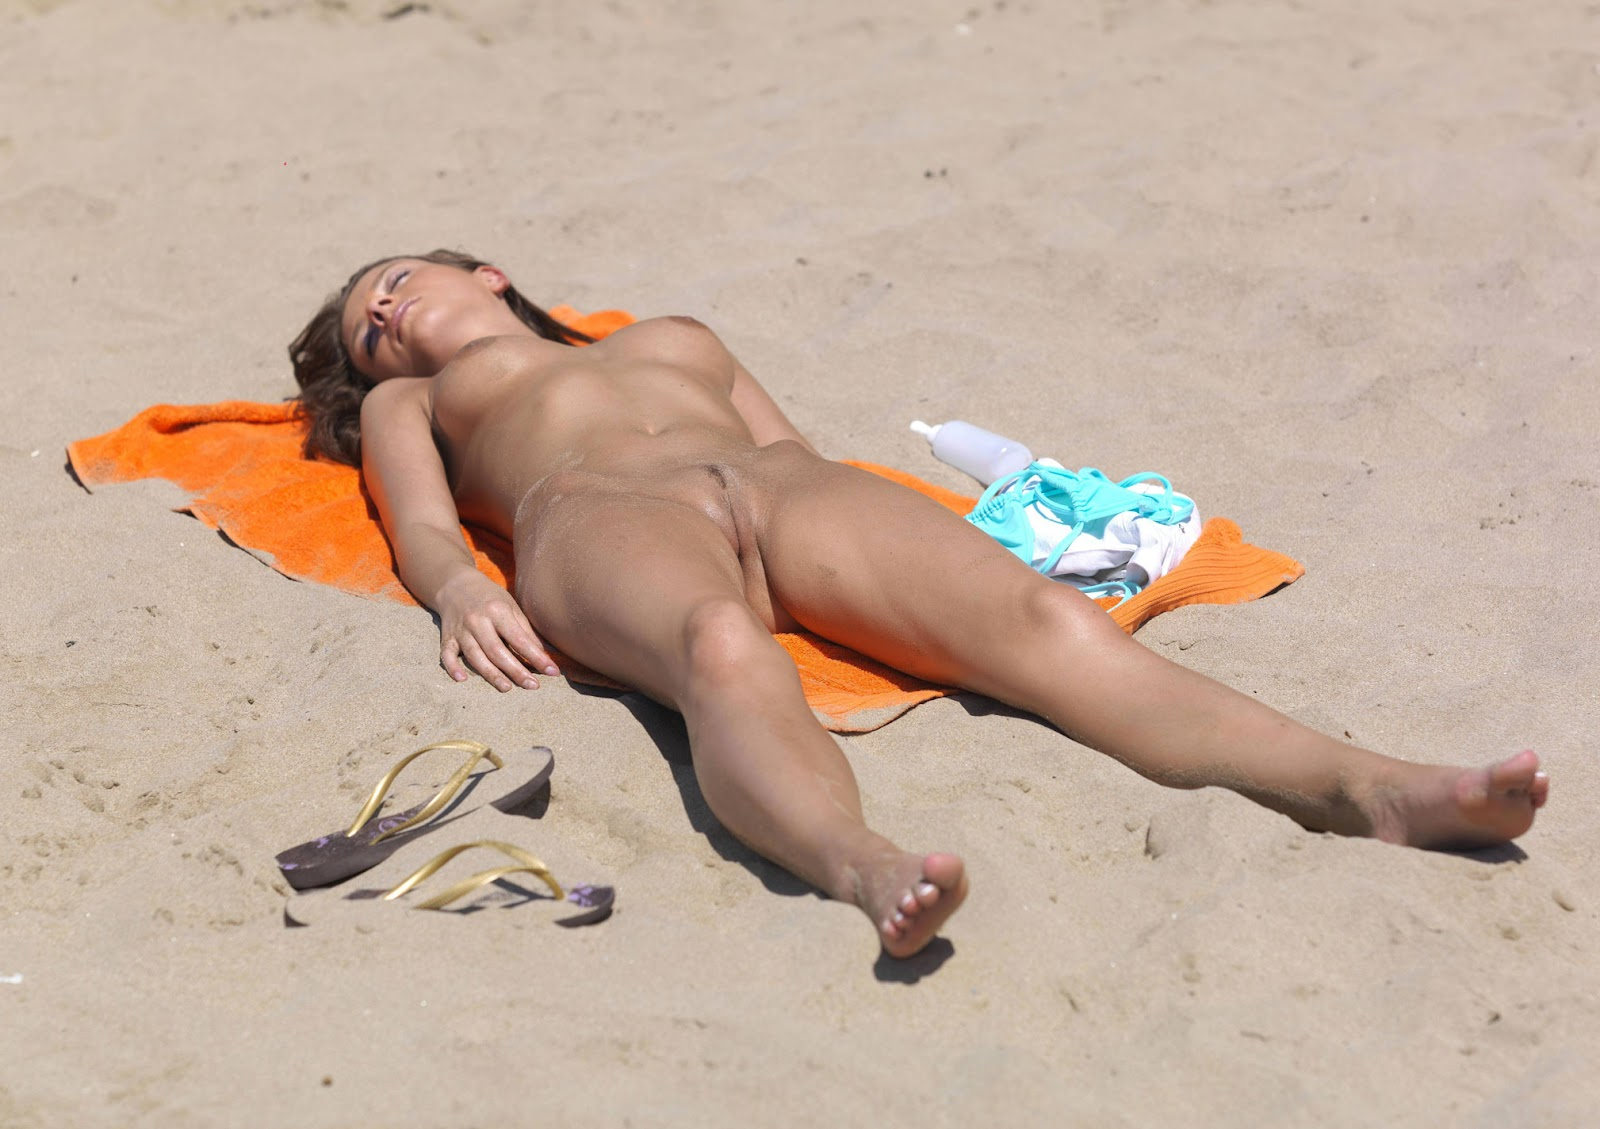 Simply excellent nudist beach candid pussy manage somehow